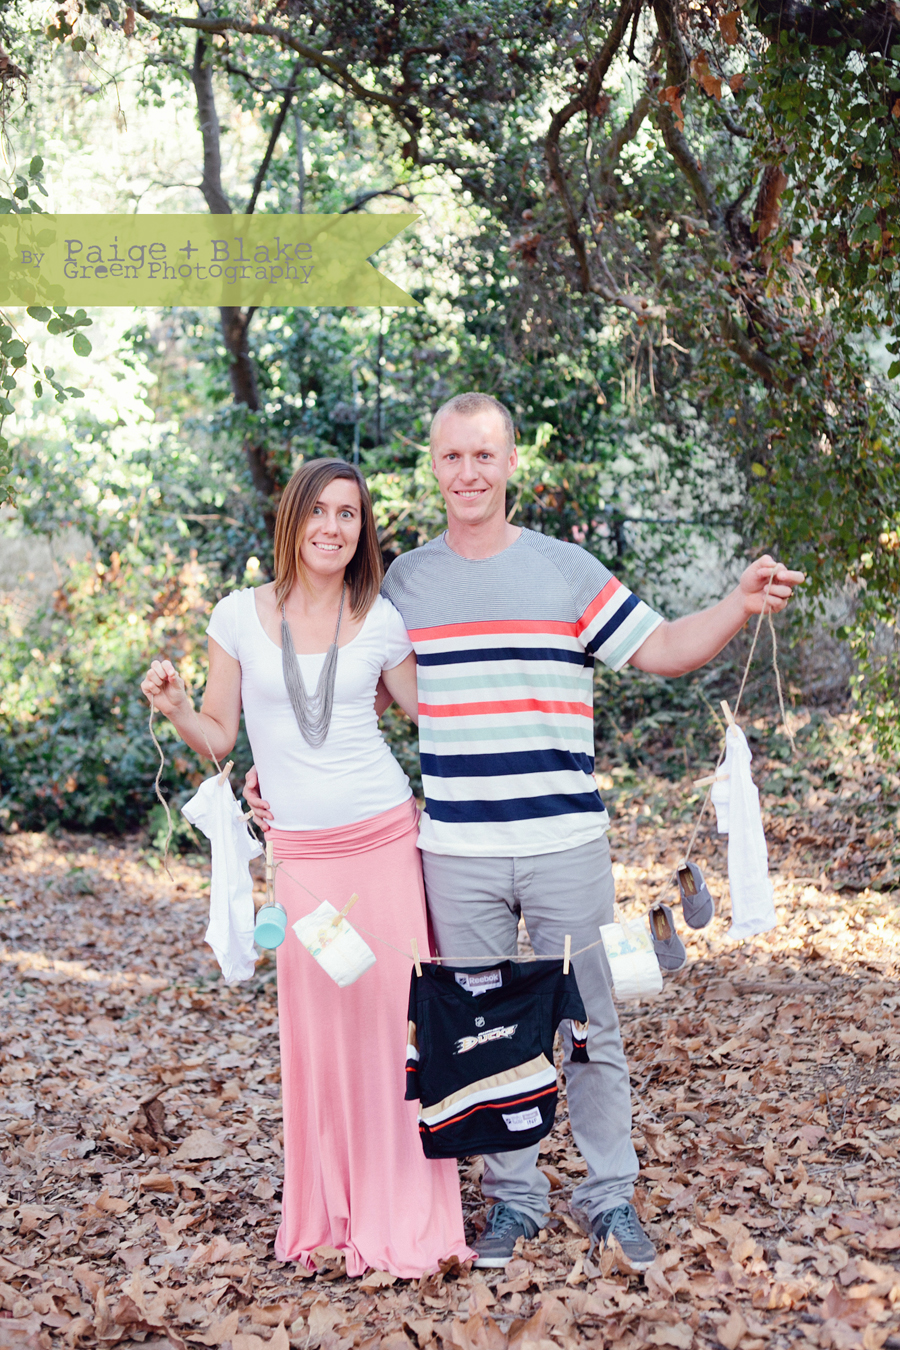 Baby Tom's, Baby Clothesline Prop,  Maternity Announcement  Photo by Paige and Blake Green